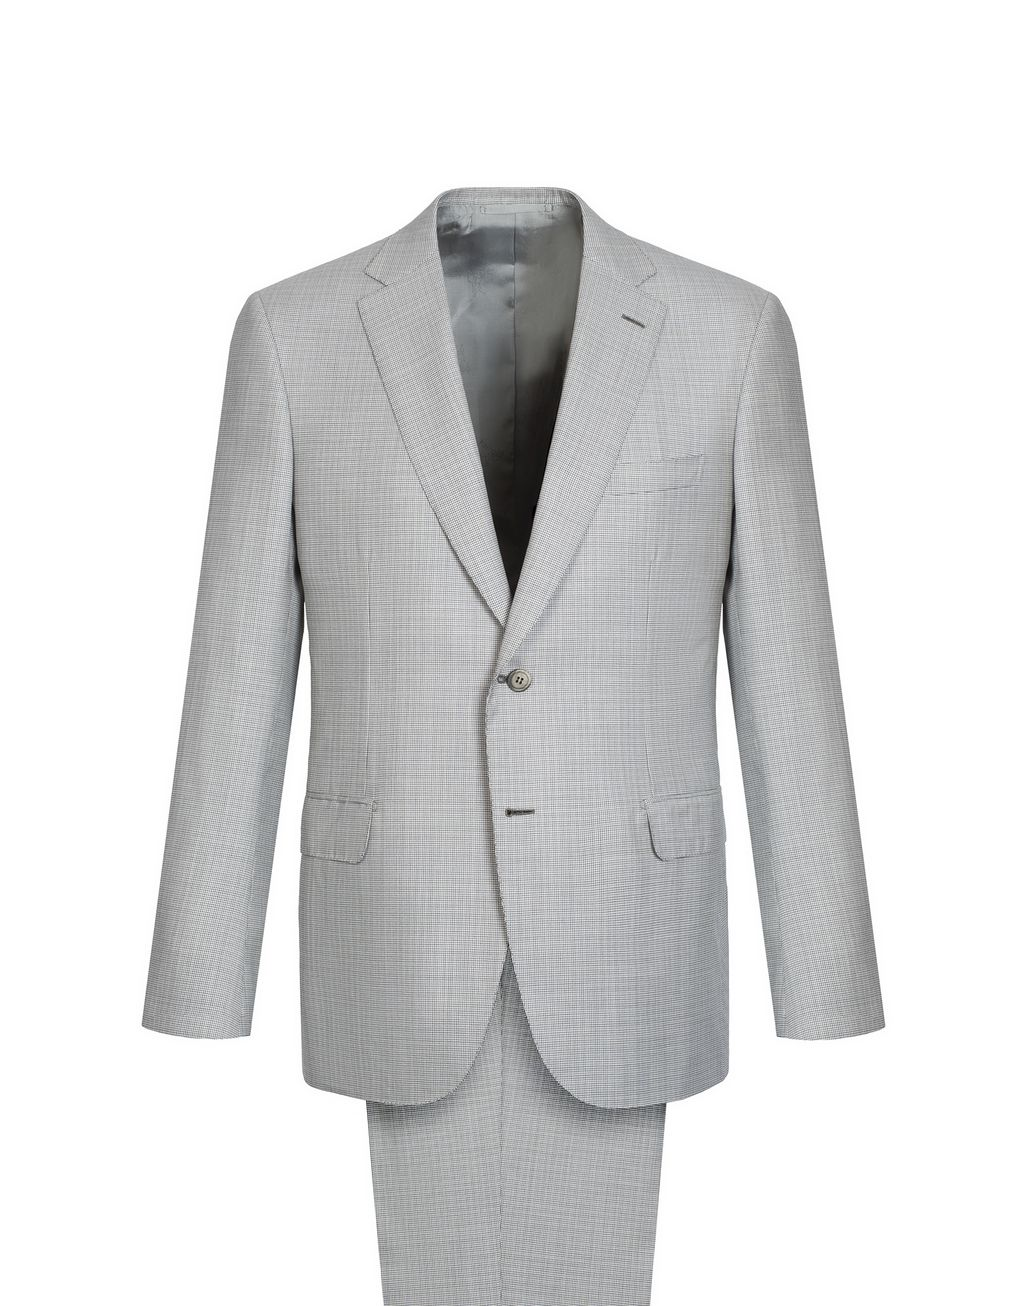 BRIONI White and Gray Micro Houndstooth Brunico Suit  Suits & Jackets Man f